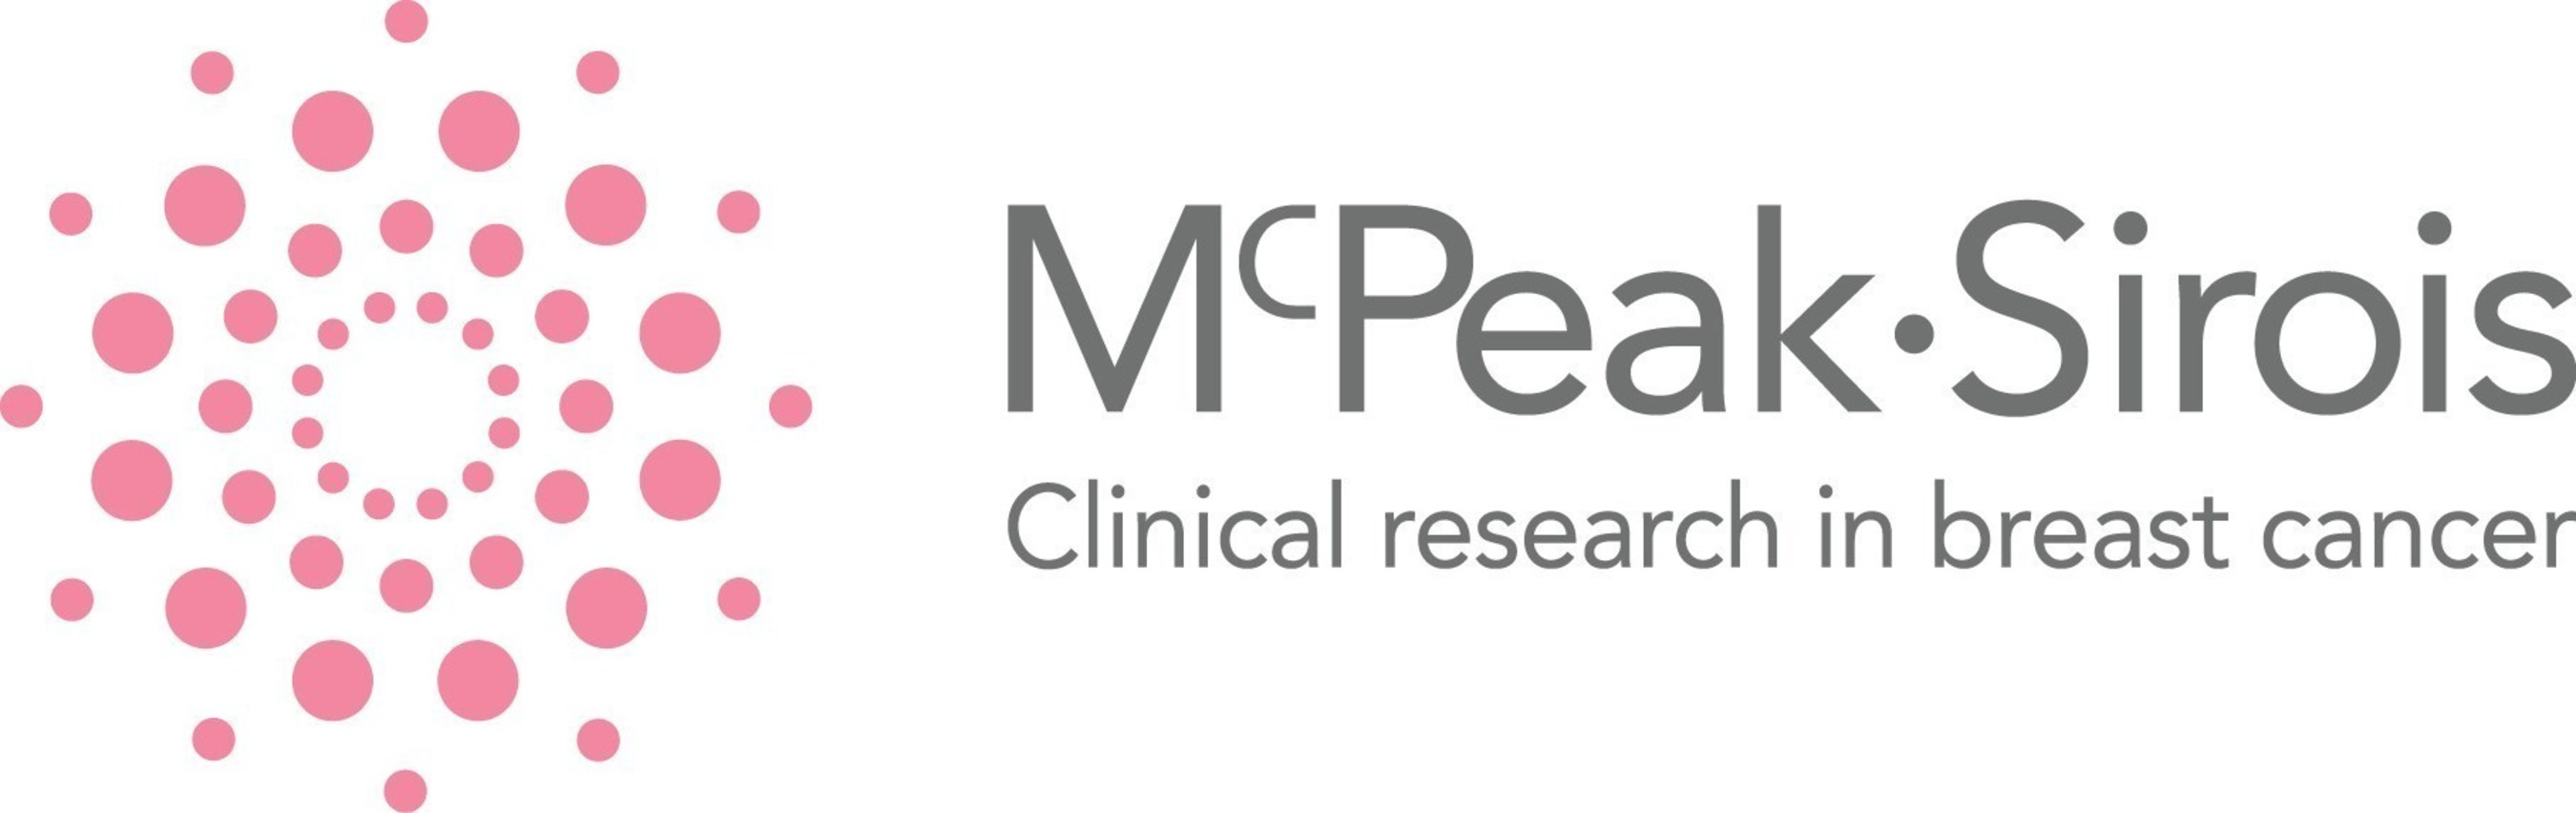 Dr. Dominique Johnson appointed as Managing Director of the McPeak-Sirois Group